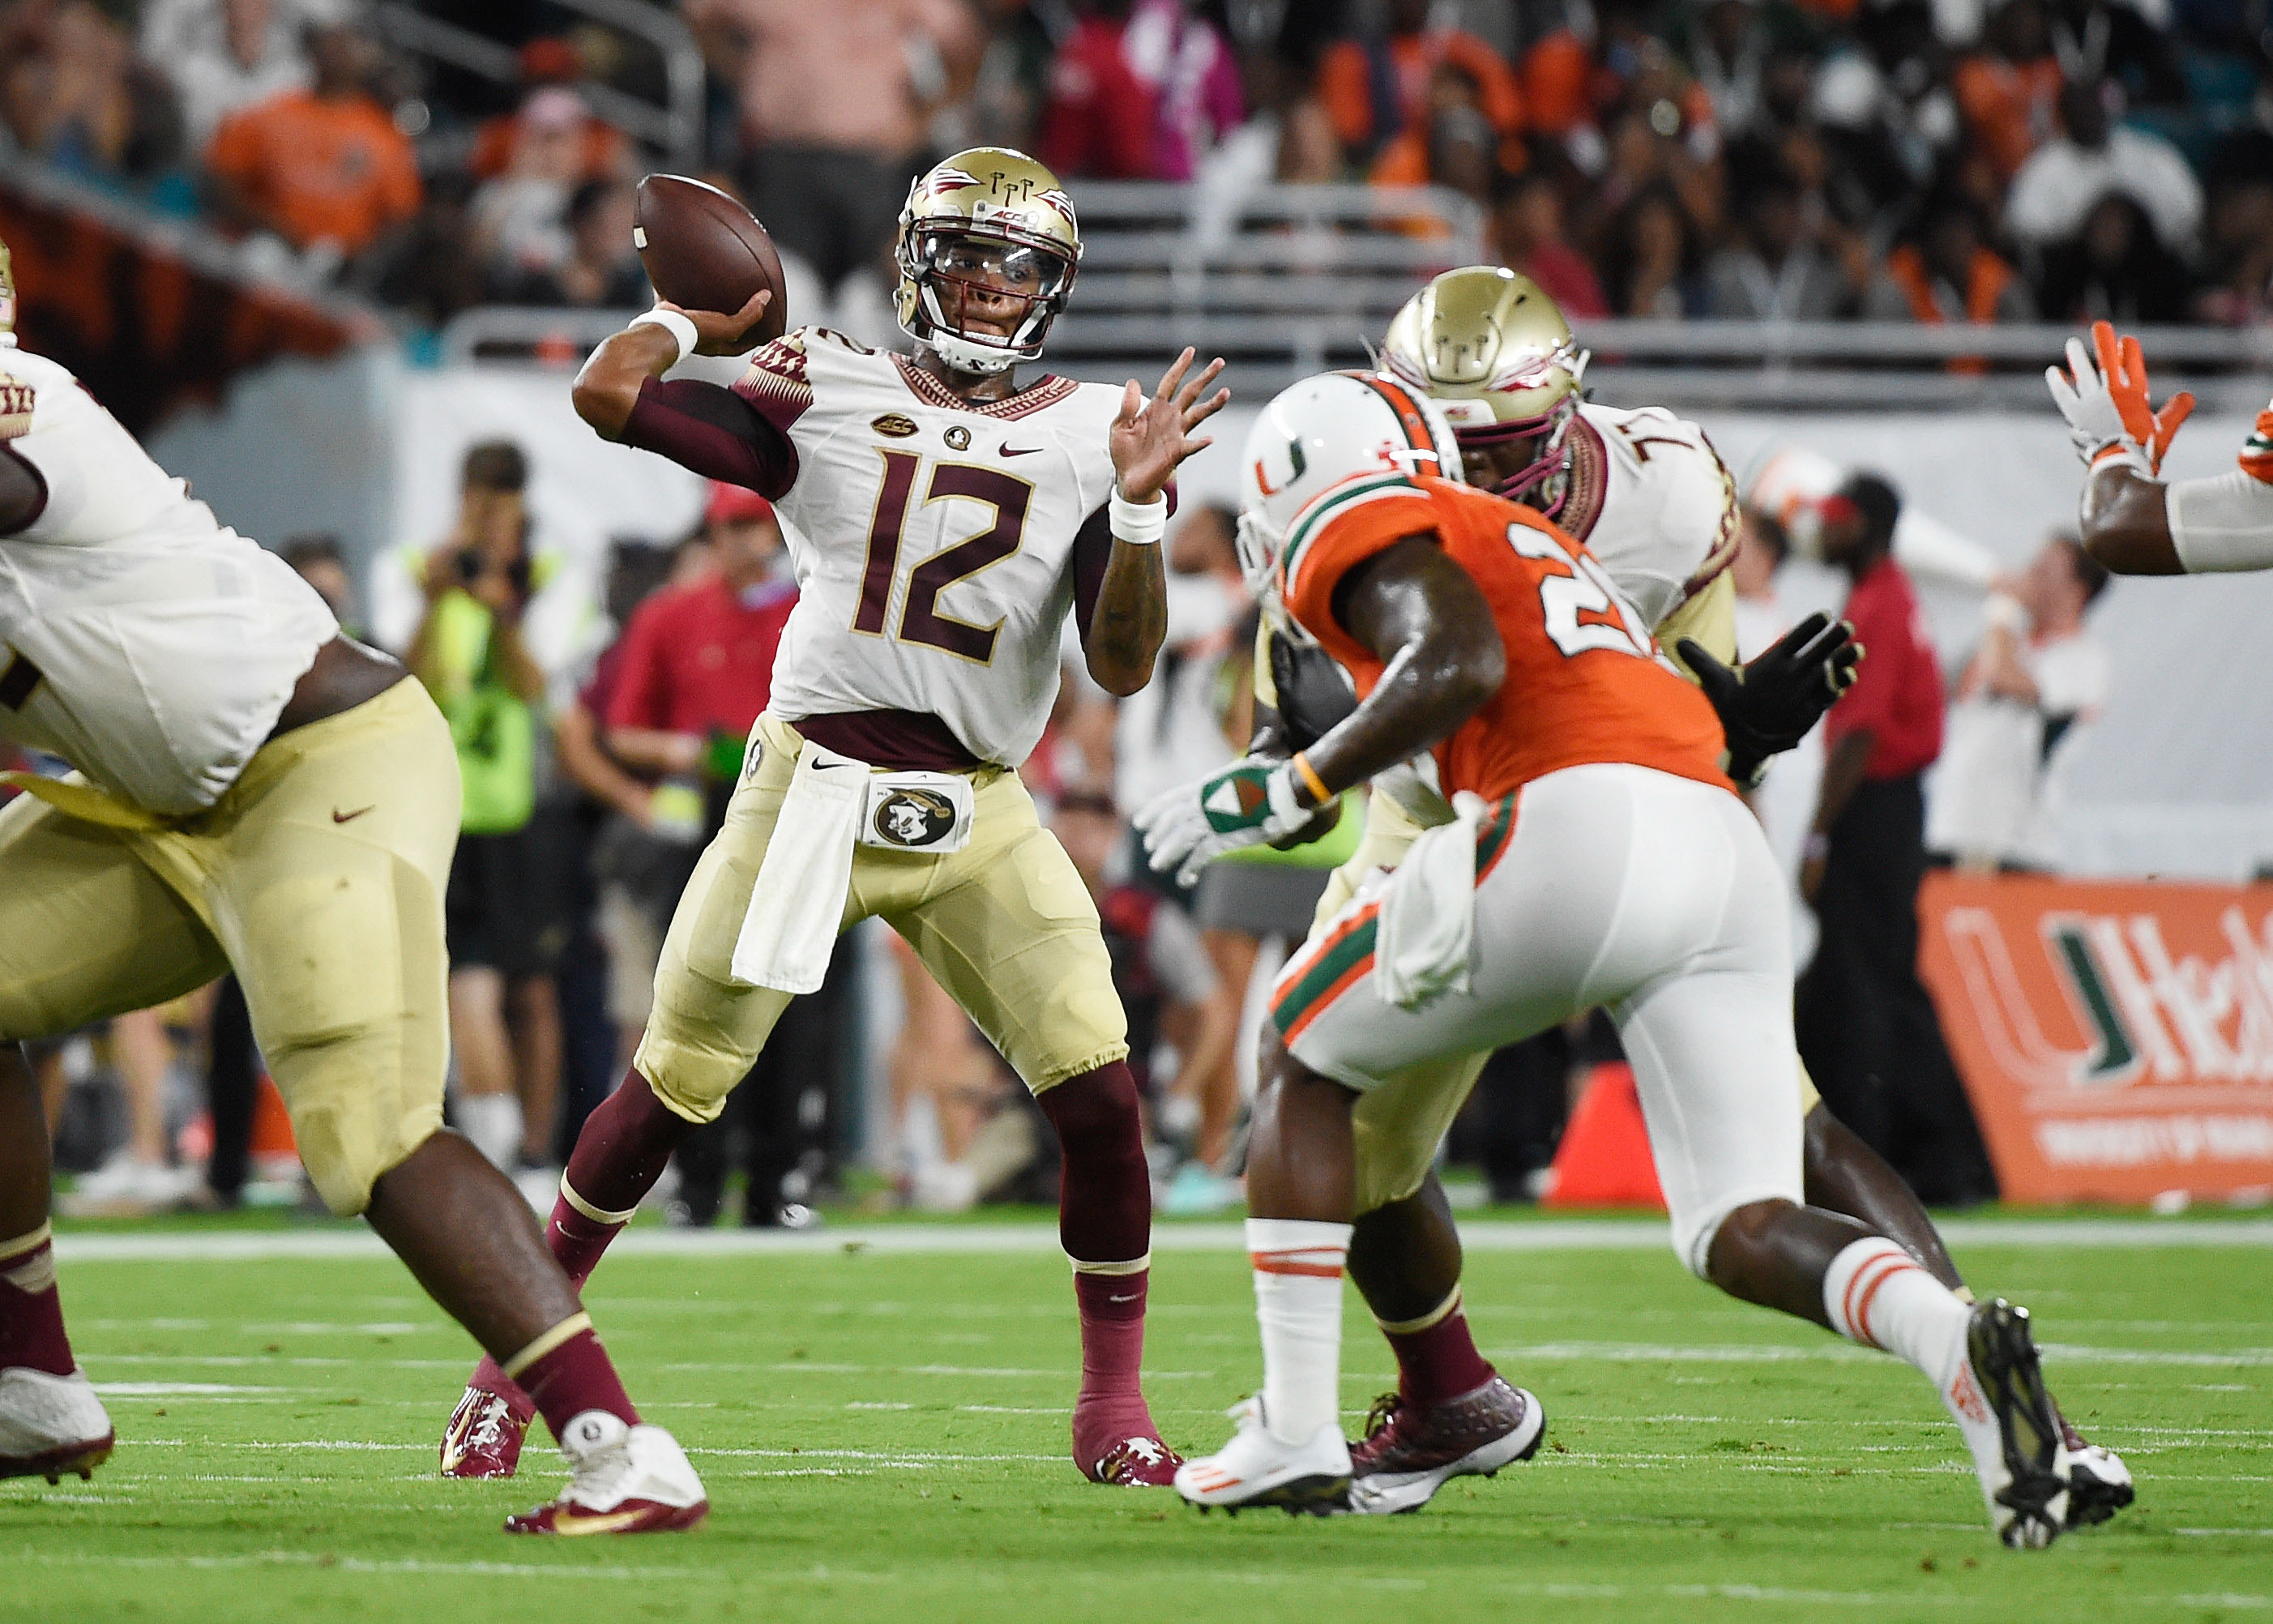 Fsu football 2018 recruiting class news and updates oct 8 2016 miami gardens fl usa florida state seminoles quarterback deondre francois 12 throws a pass during the first half against the miami voltagebd Image collections